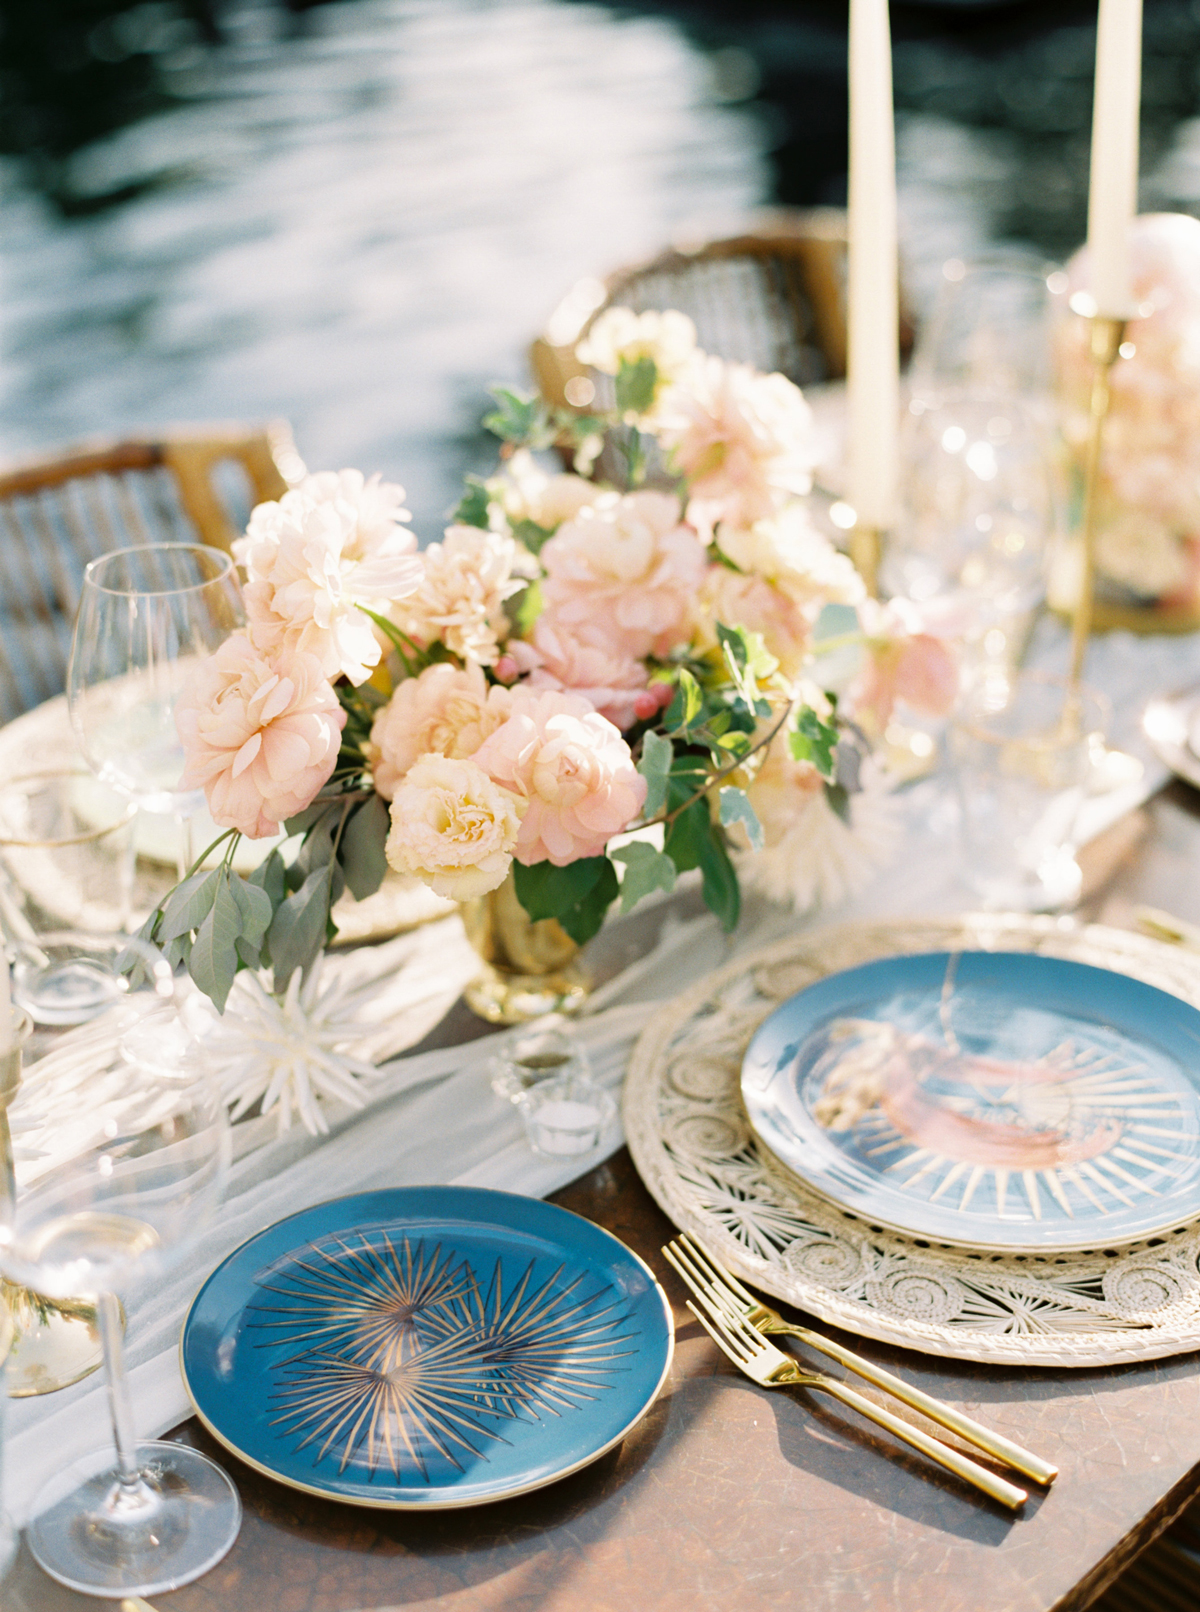 How to Set the Perfect Reception Table